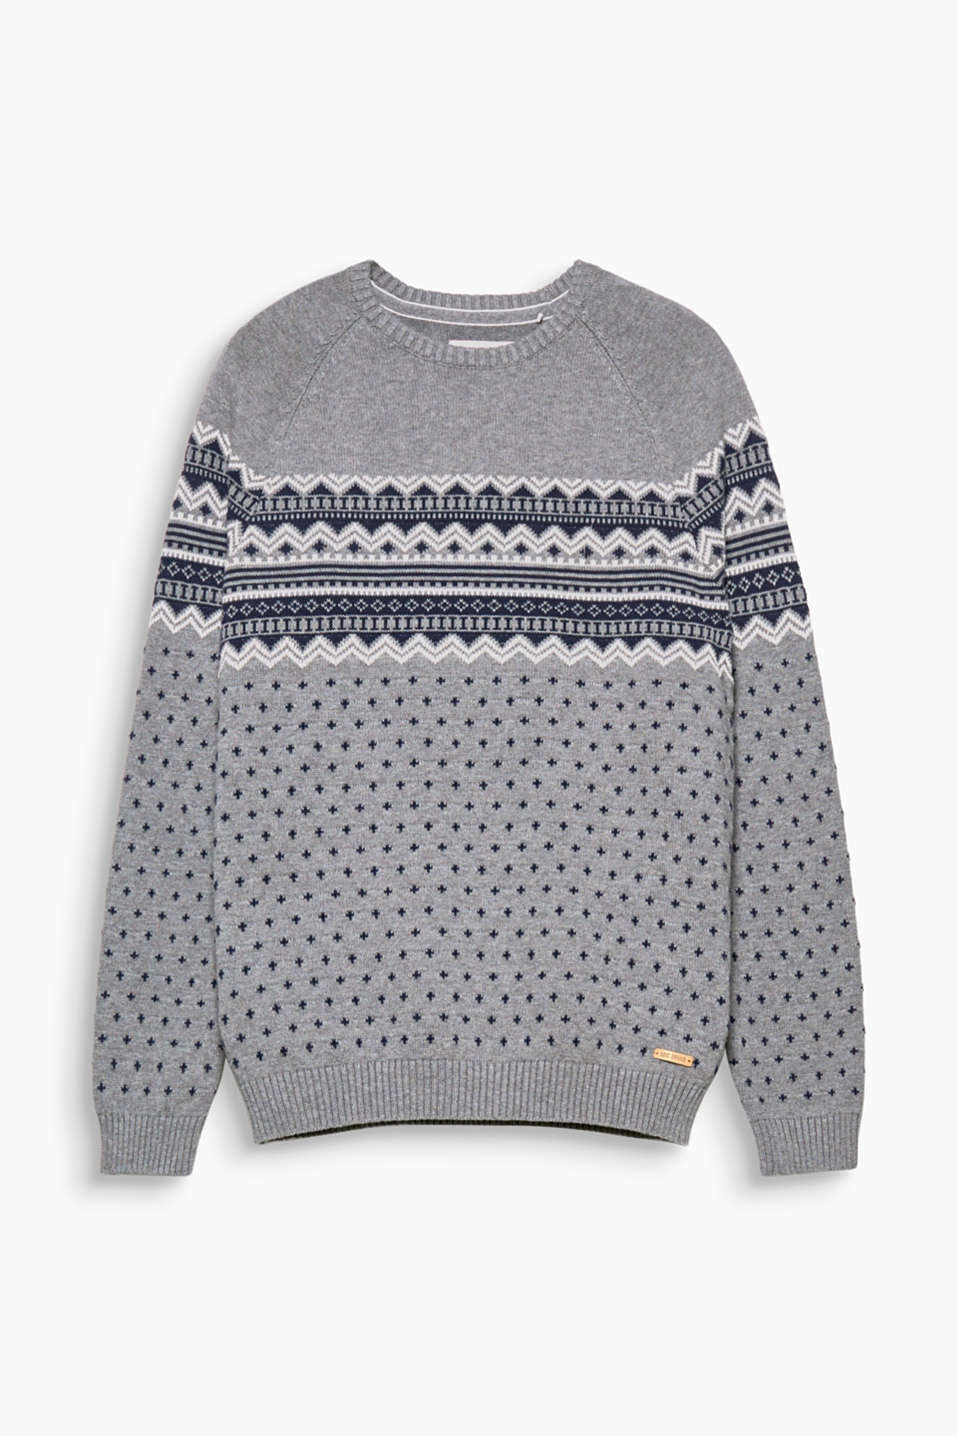 This cotton jumper features an authentic Norwegian pattern with little interwoven stars for an exciting new twist!